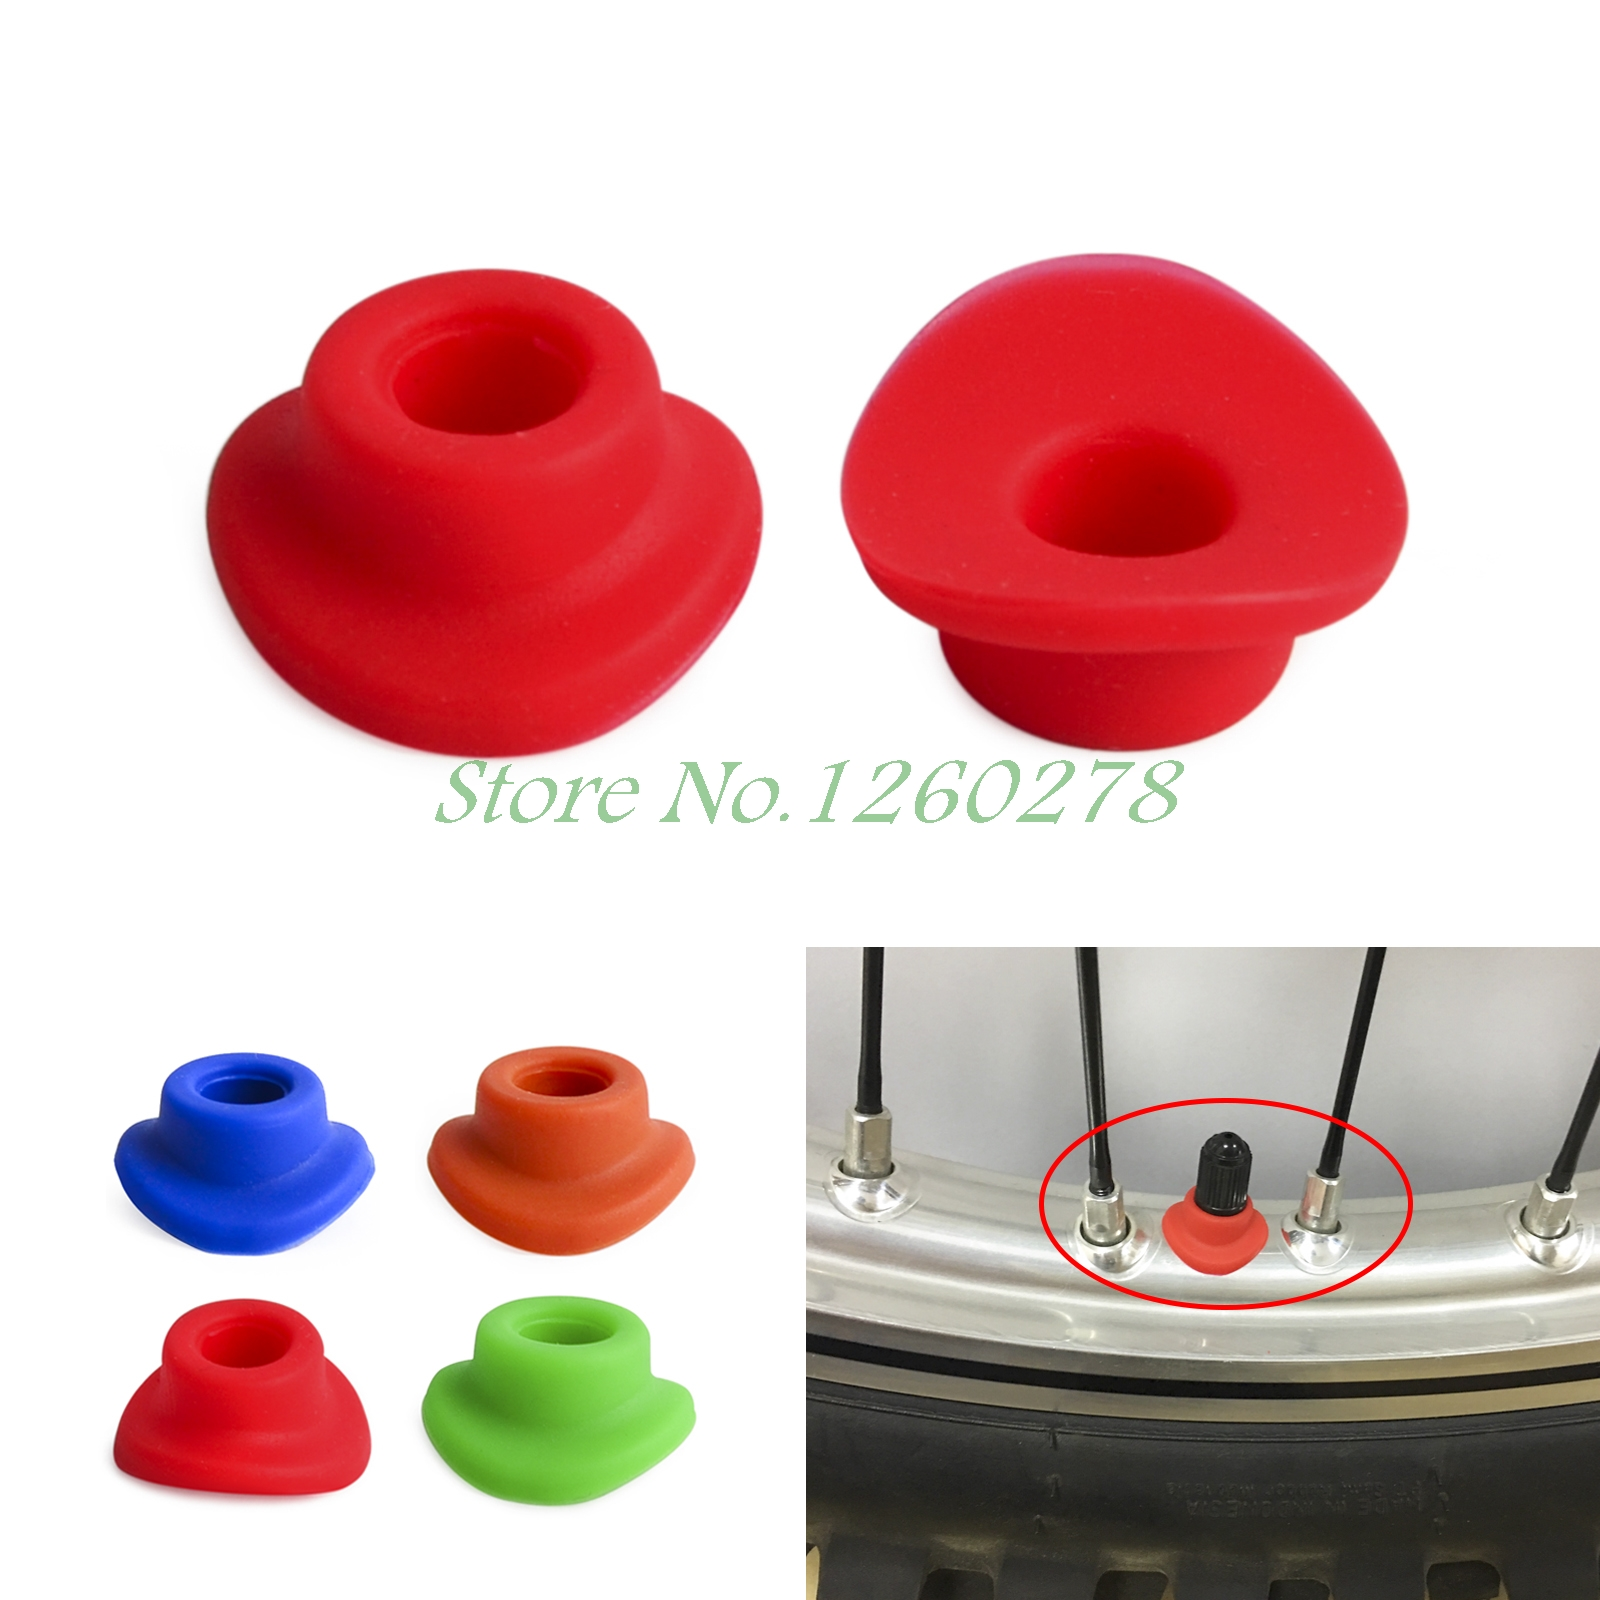 Air Valve Sleeve Waterproof Pad Rubber For Honda CR80R/85R CR125 250 CRF150R CRF250R/L <font><b>CRF250X</b></font> CRF450 CRF230F XR230 XR400 image